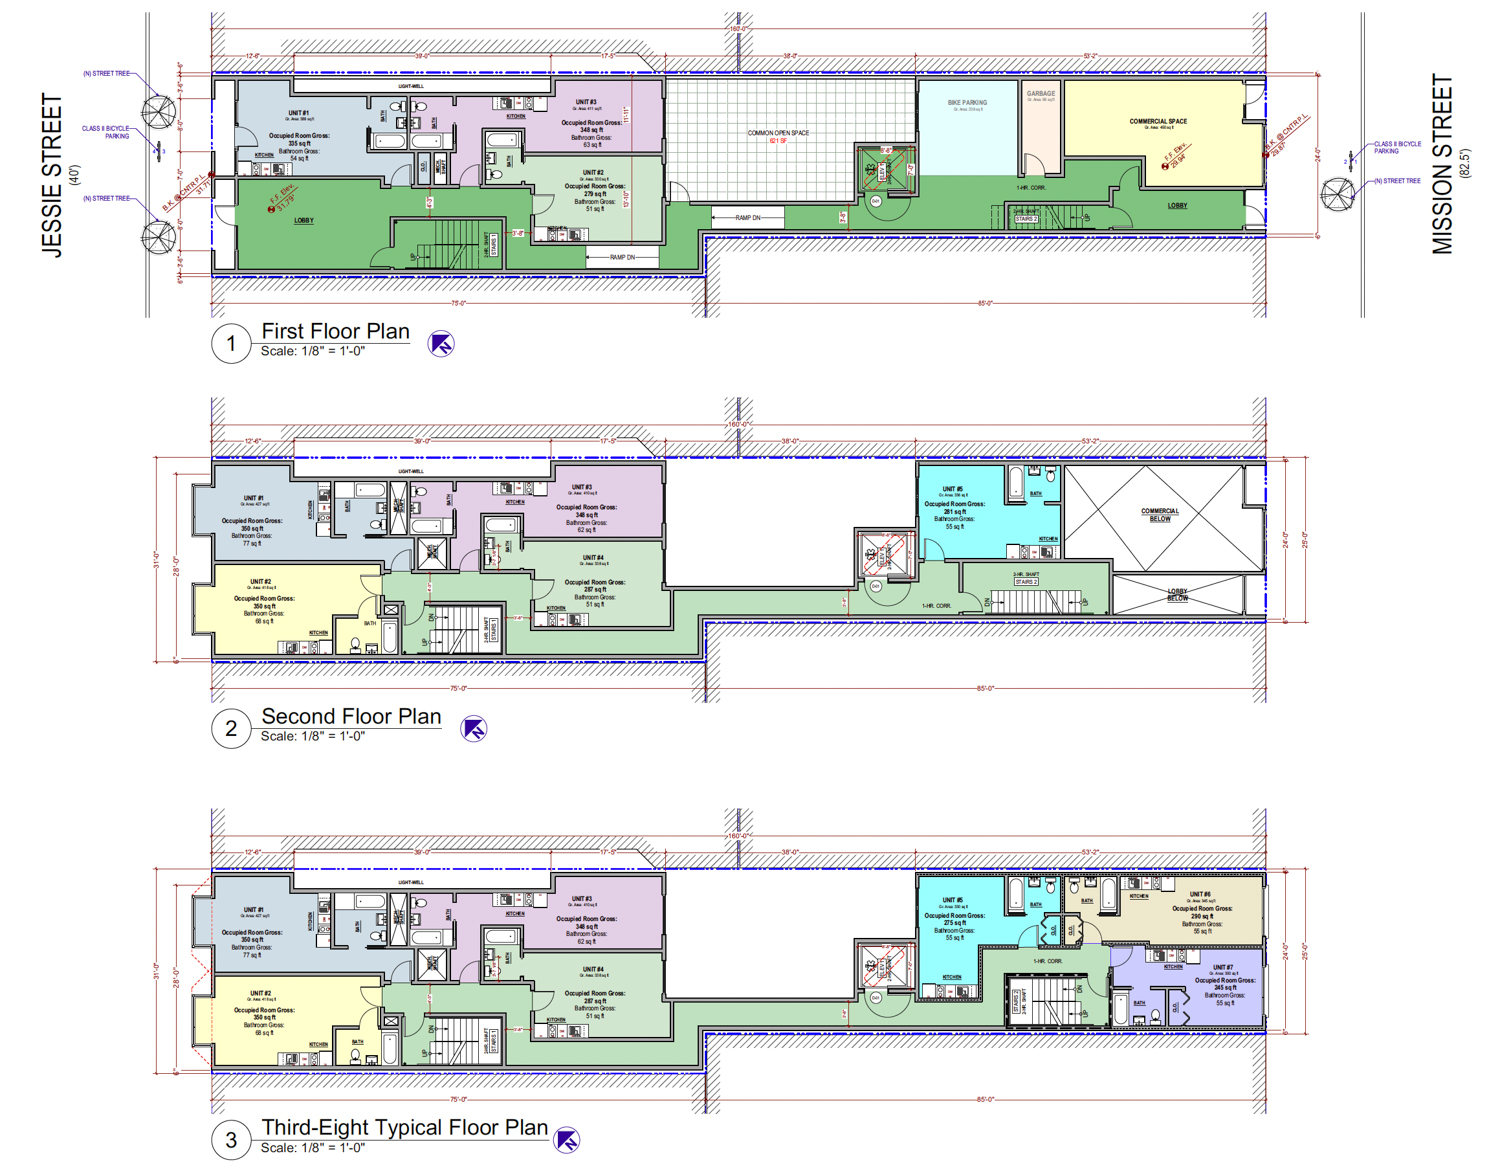 1010 Mission Street floor plans, design by SIA Consulting